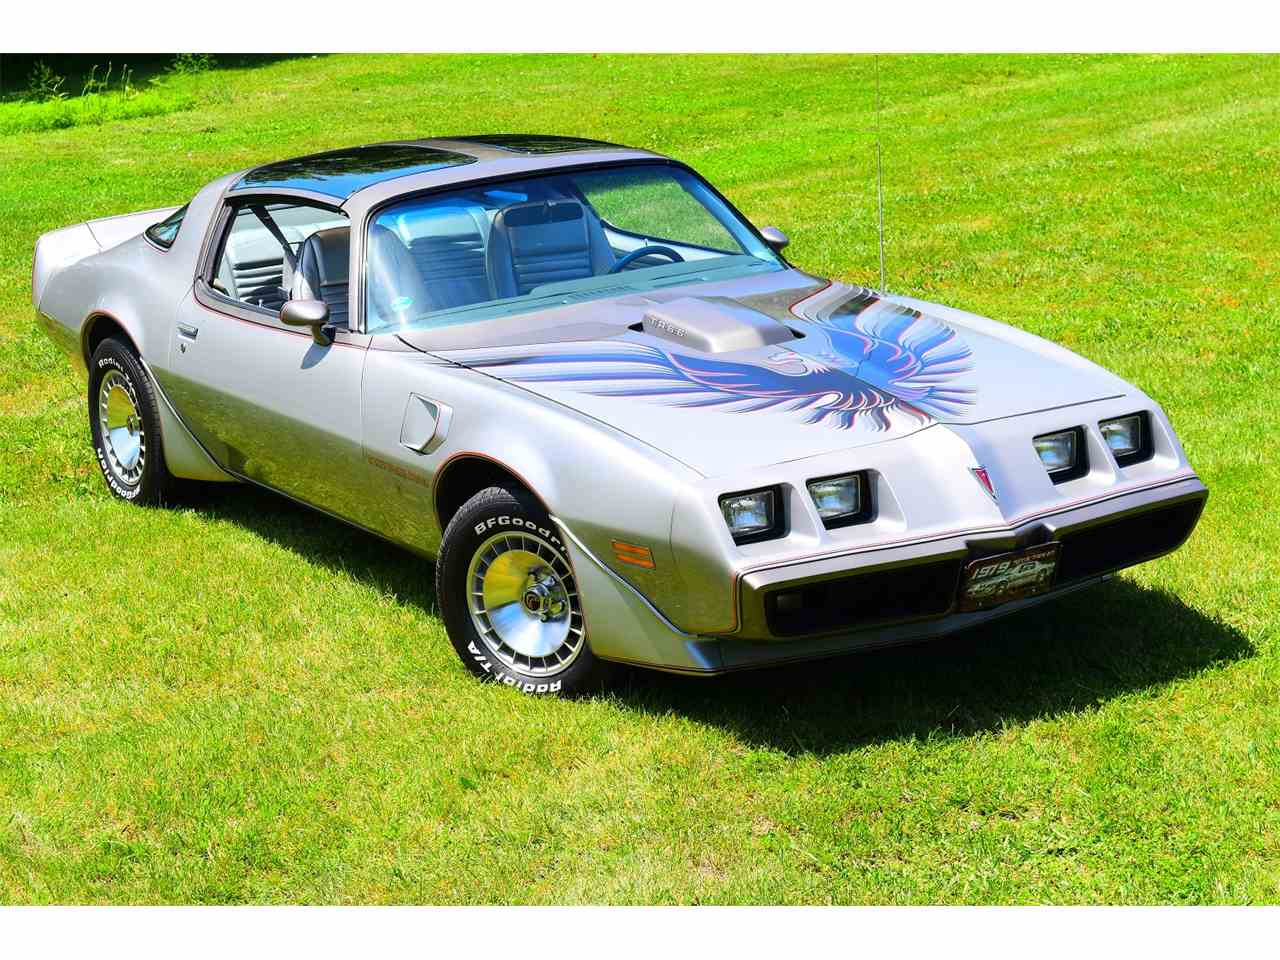 1979 pontiac firebird trans am se for sale cc 1040377. Black Bedroom Furniture Sets. Home Design Ideas